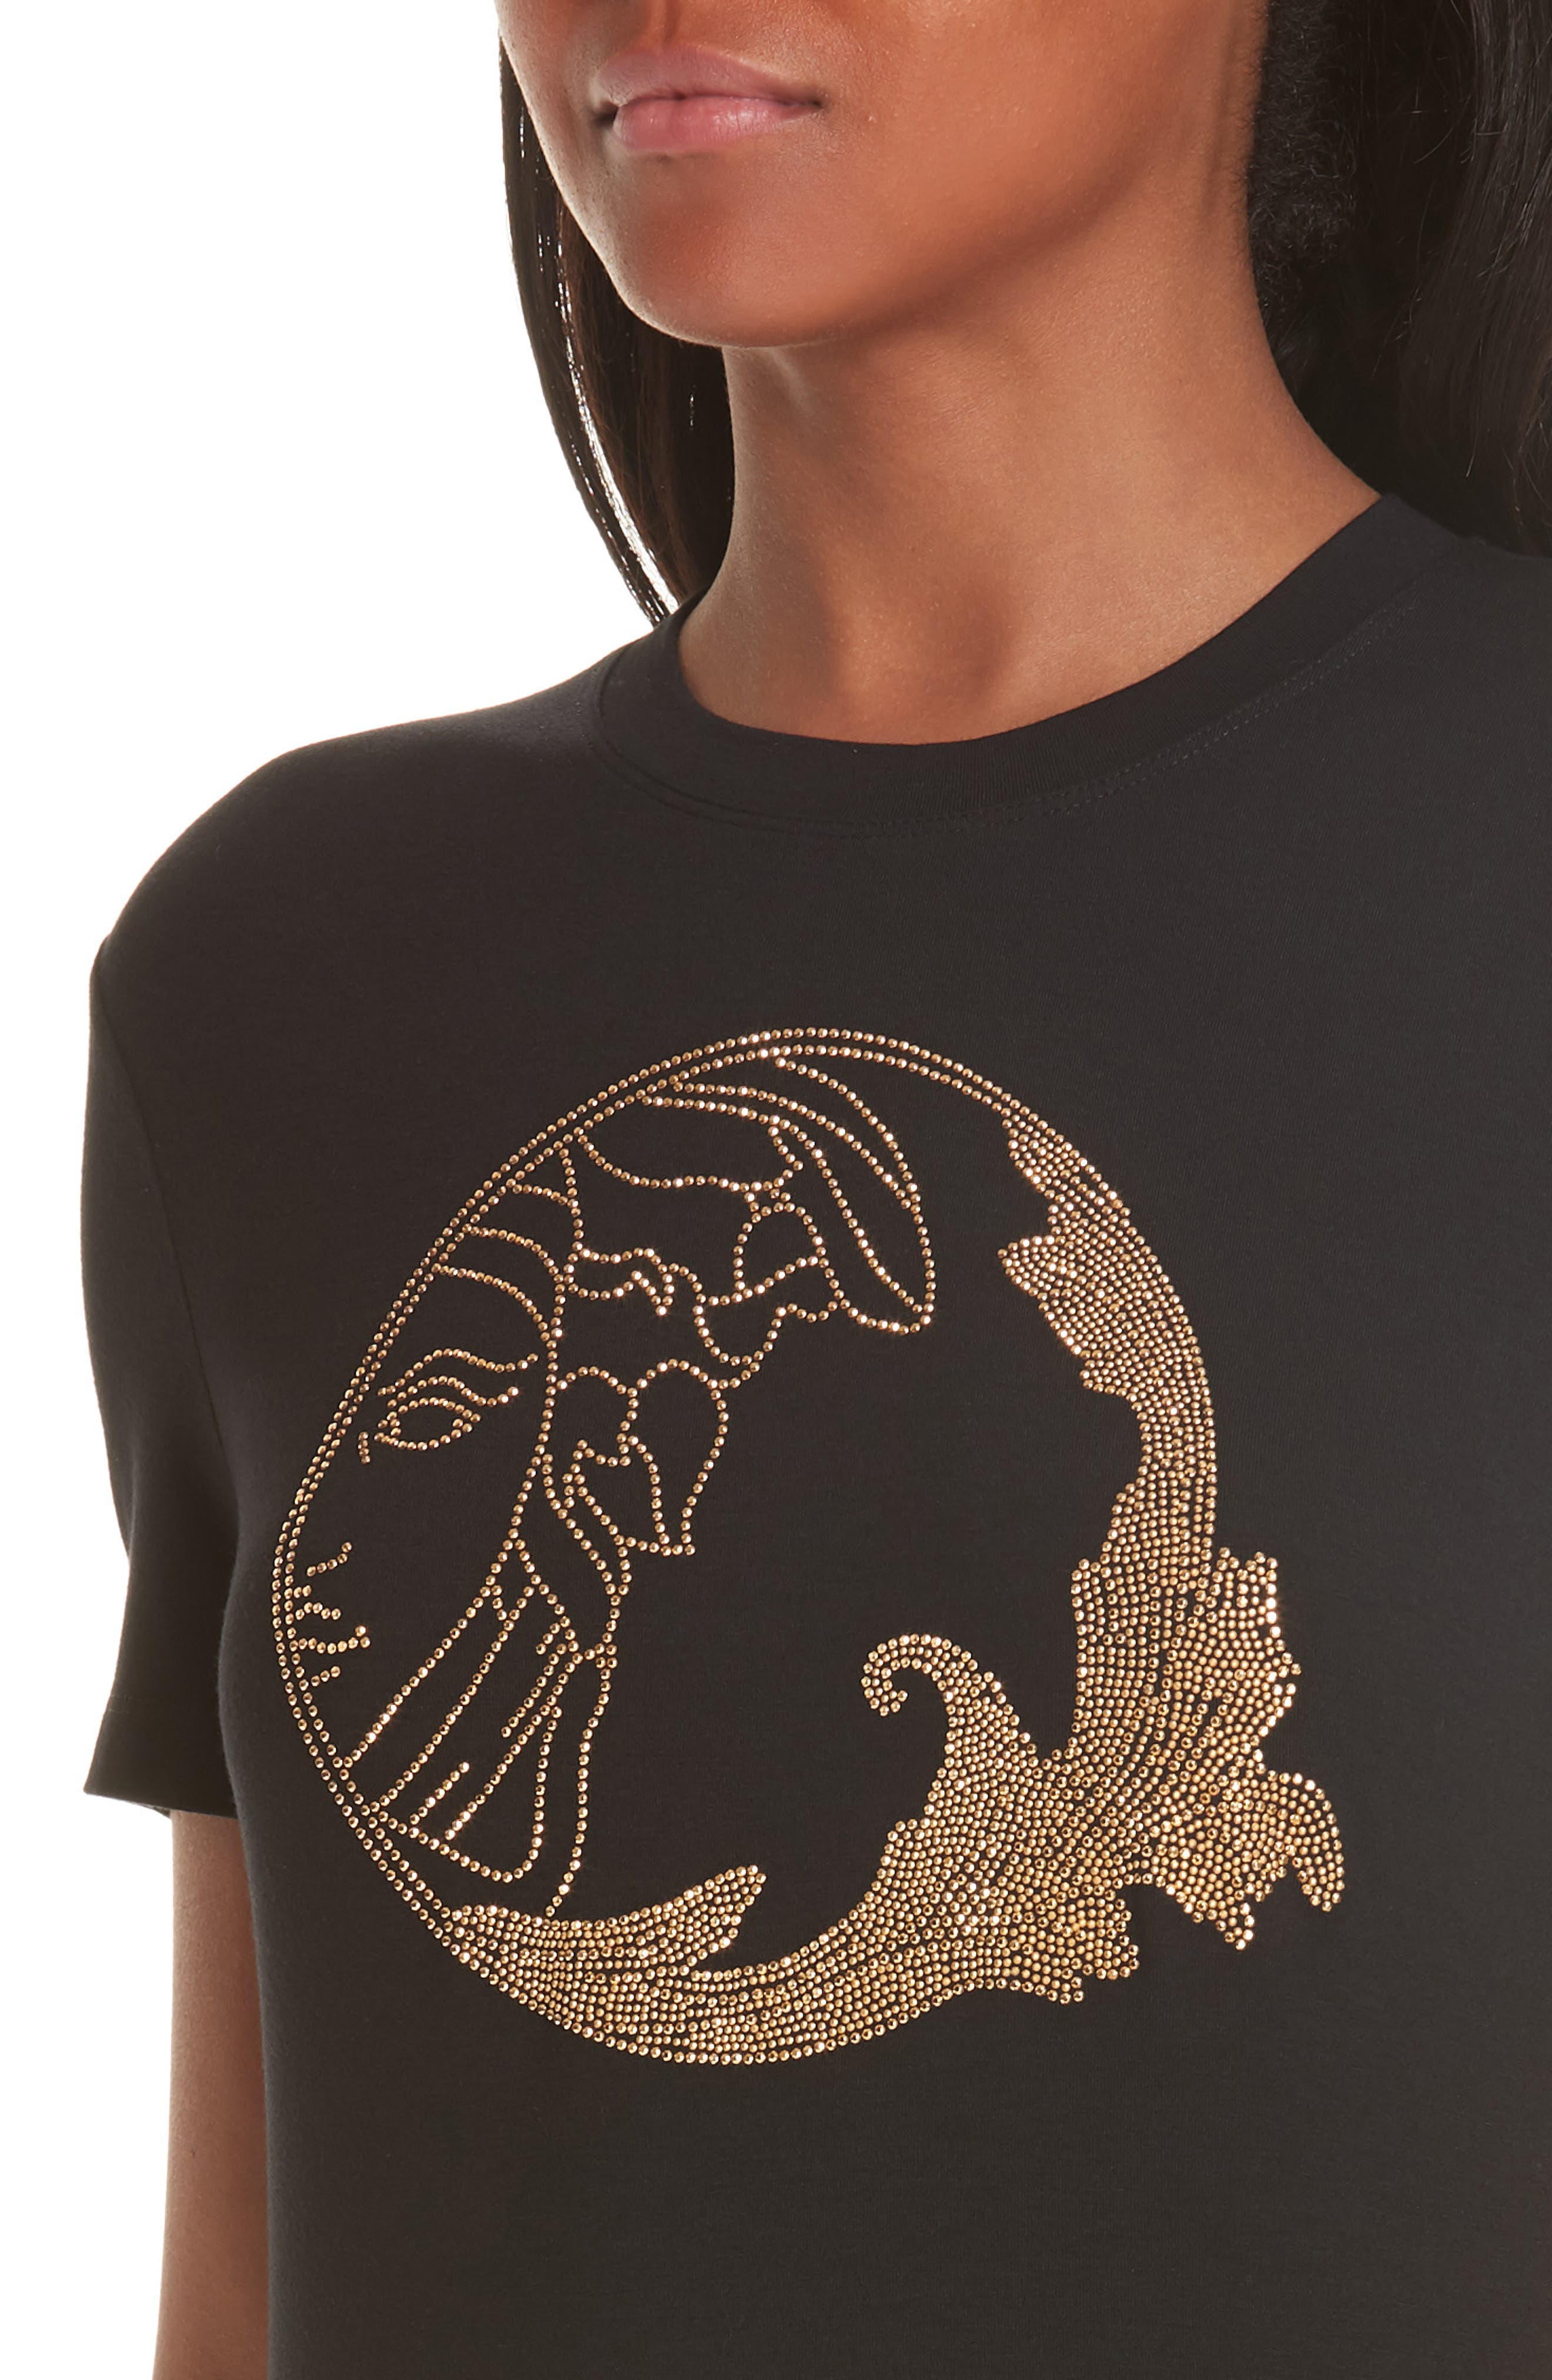 VERSACE COLLECTION, Medusa Crystal Embellished Jersey Tee, Alternate thumbnail 4, color, BLACK